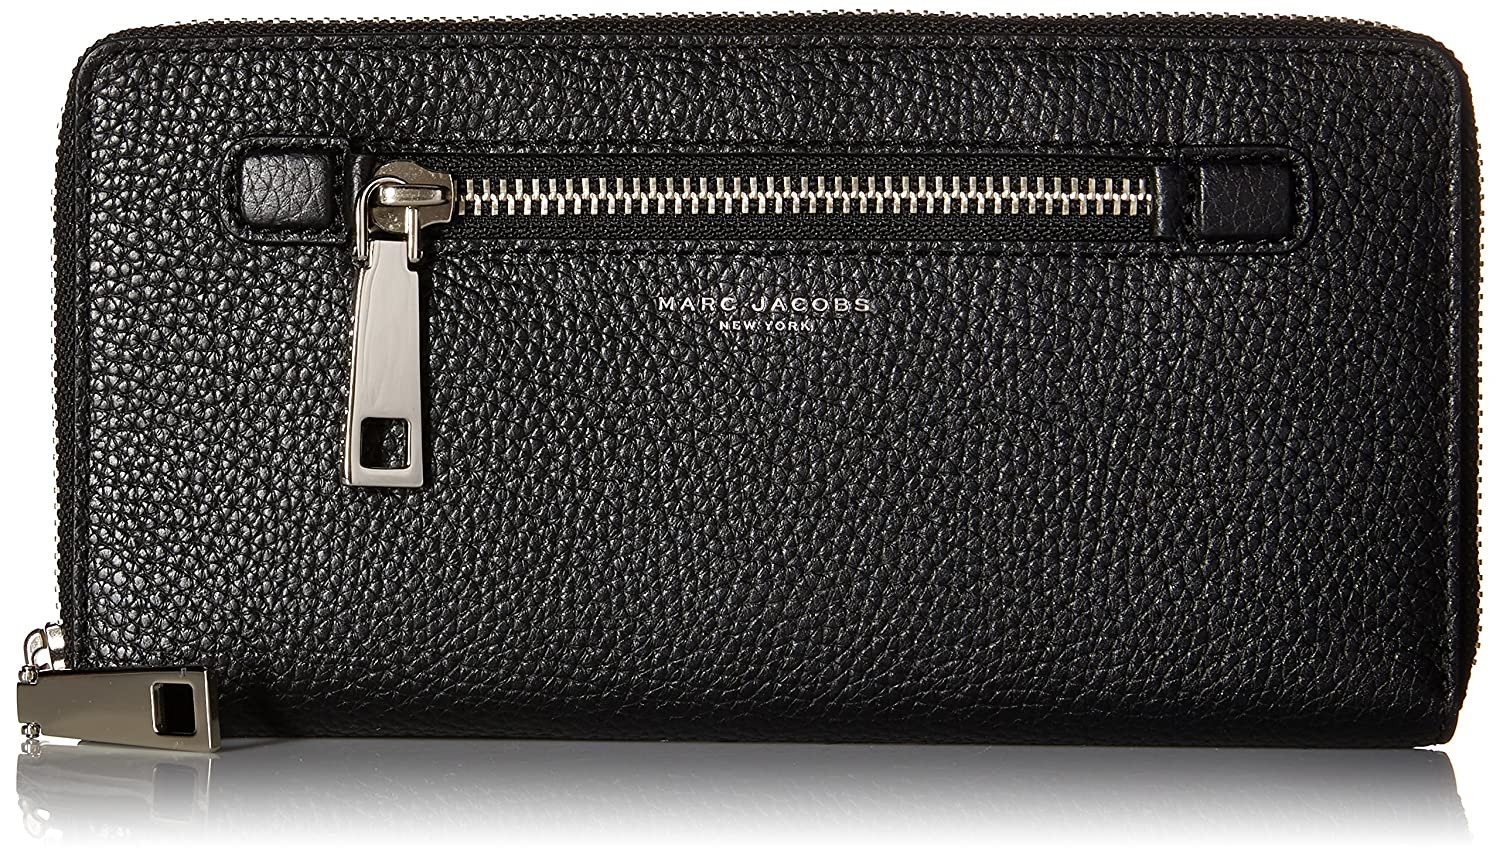 Marc Jacobs Gotham City Slgs Travel Wallet Begonia One Size